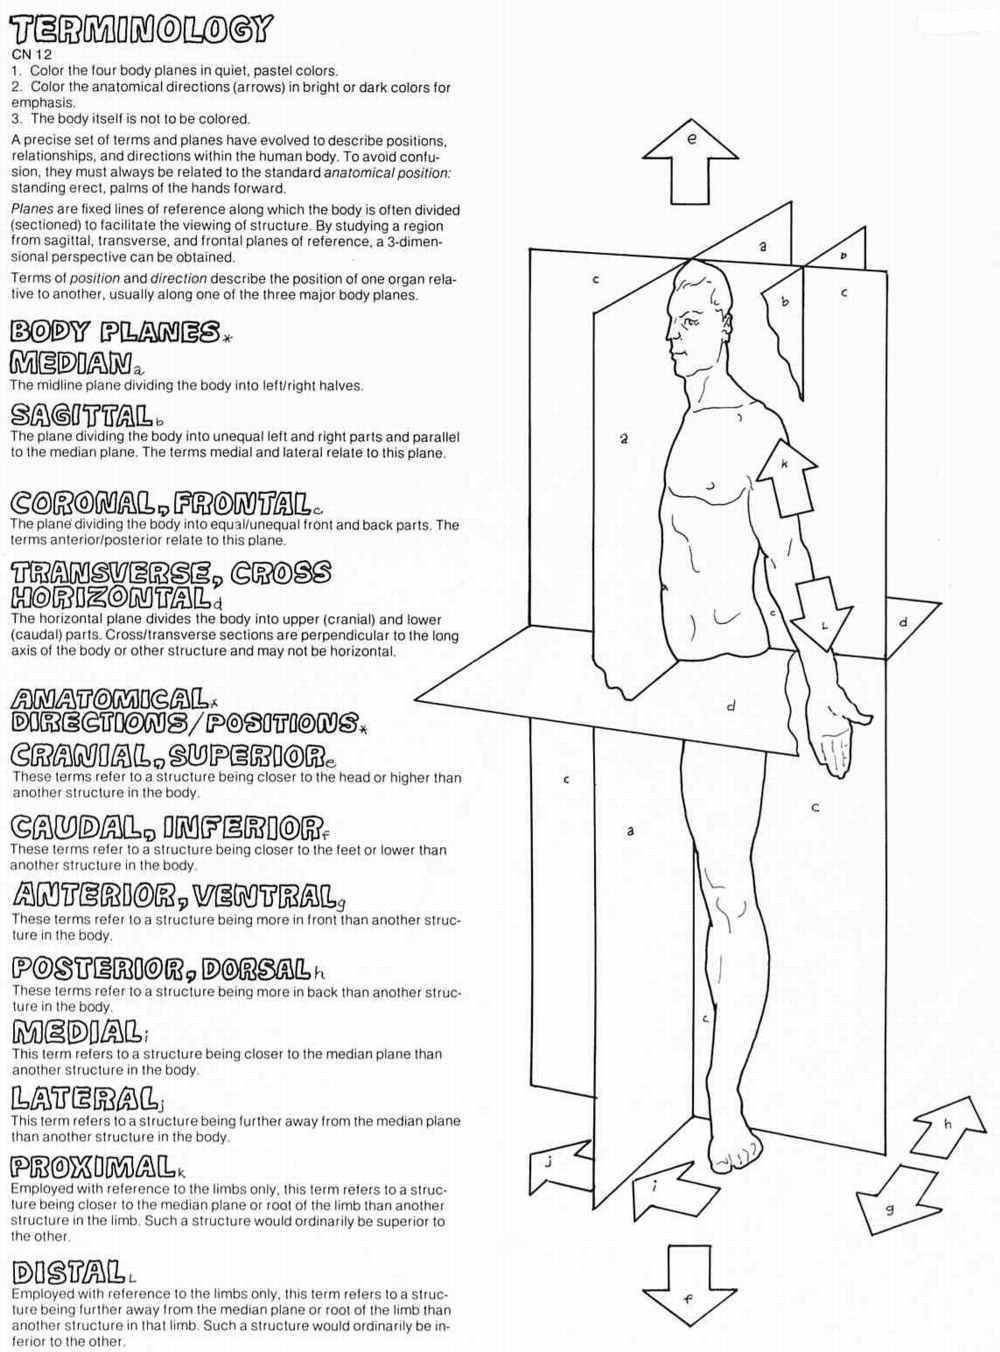 Image result for anatomy and physiology orientation and directional ...